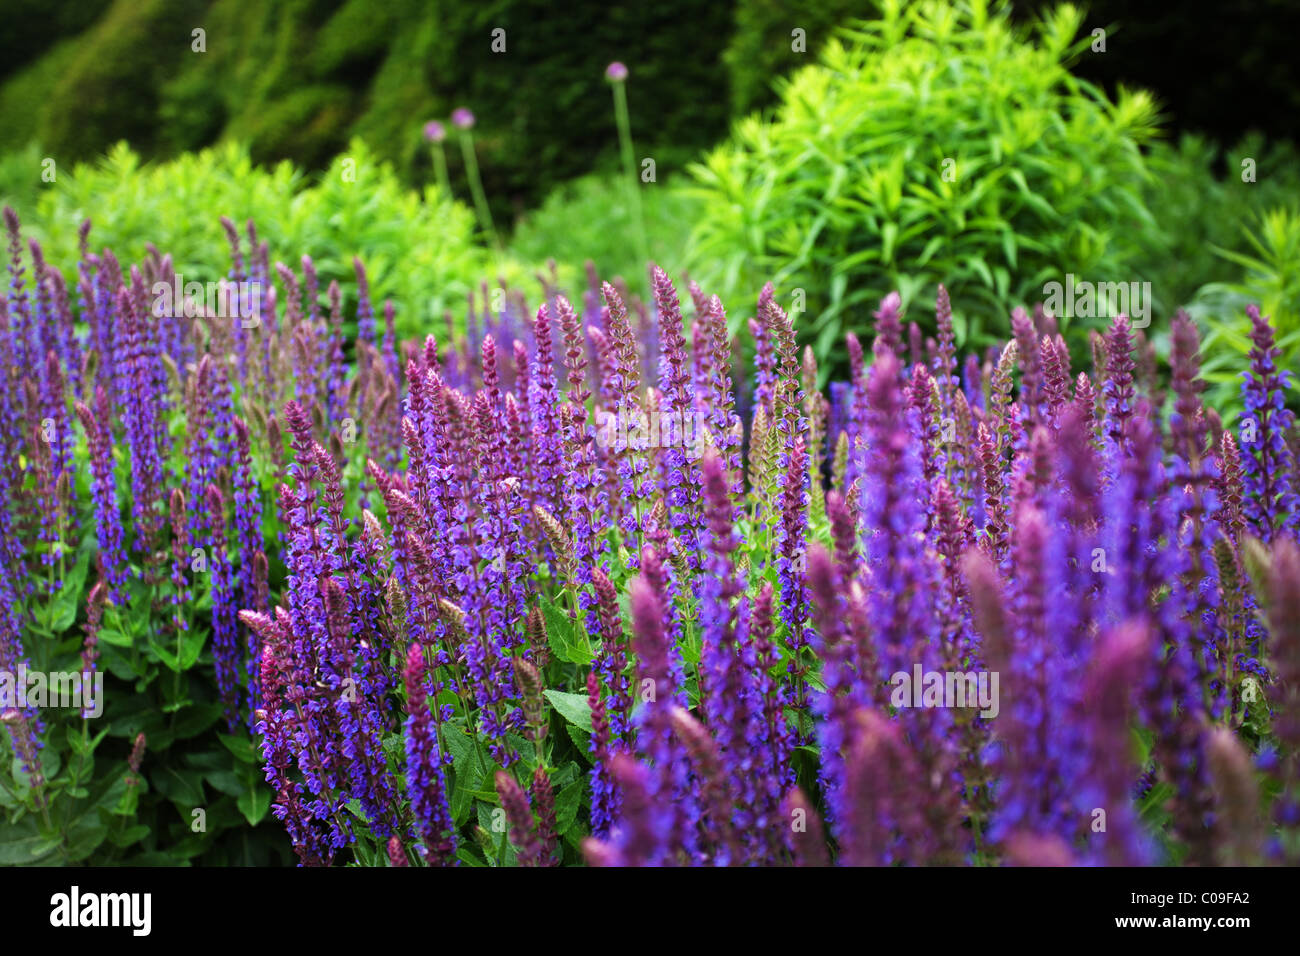 Salvia nemorosa - Stock Image